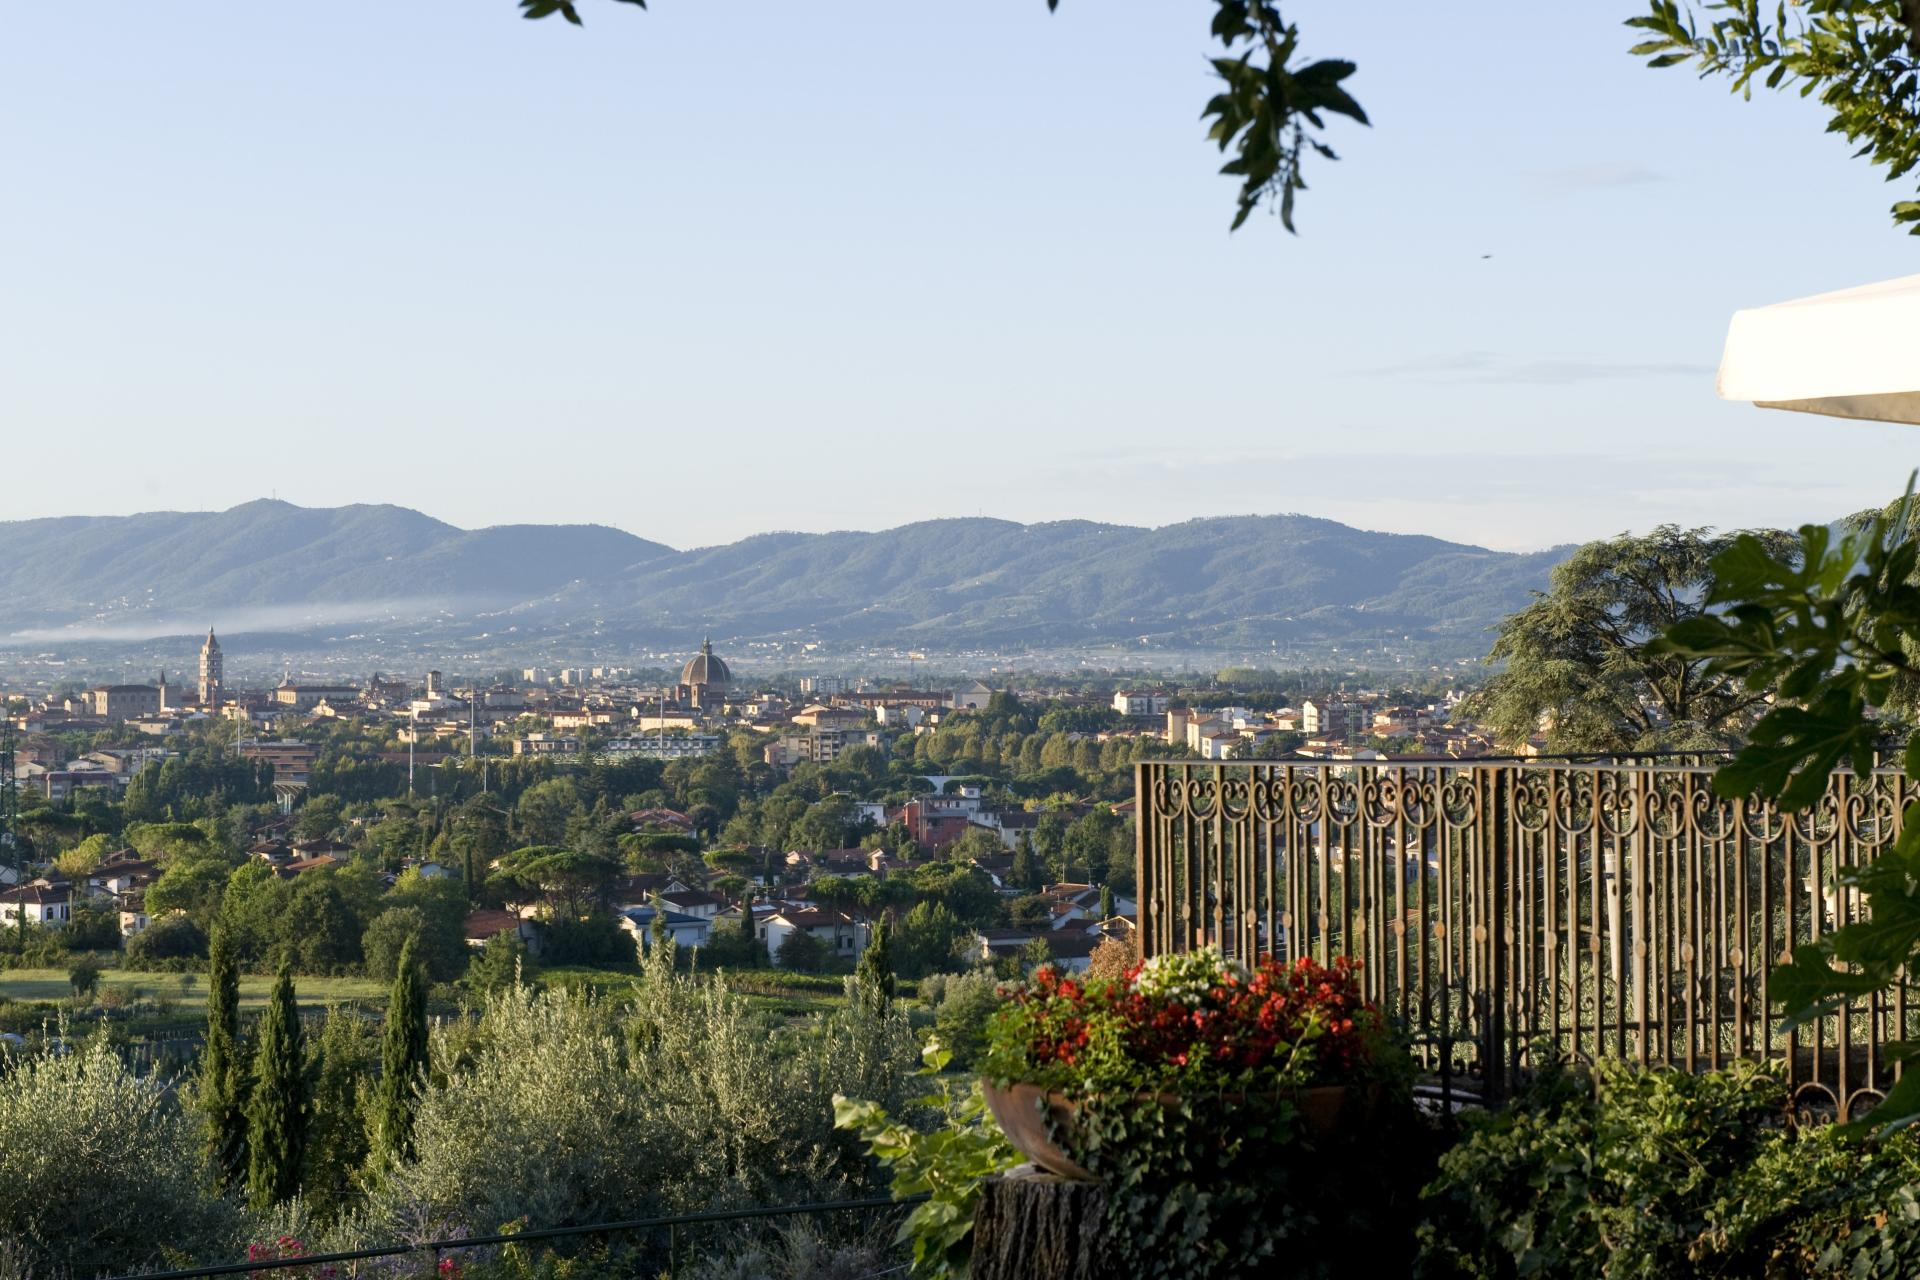 Views of Pistoia, Borgo Raffaello, Tuscany, Pistoia.